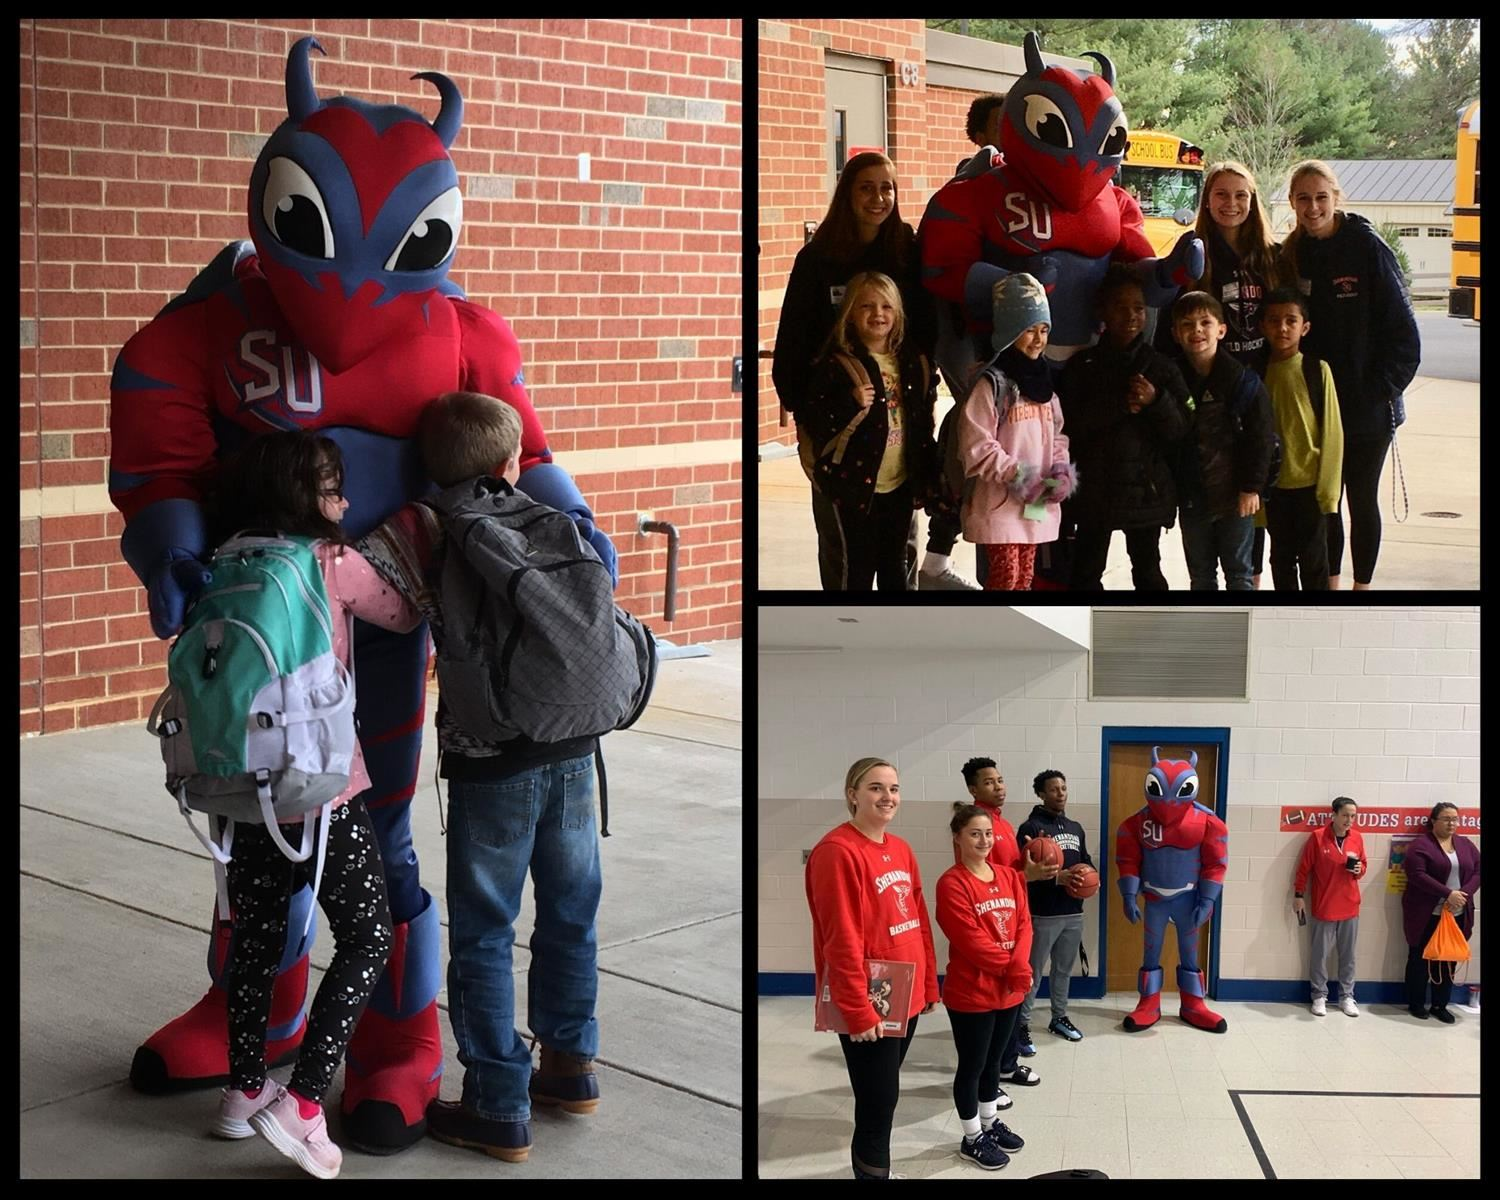 students and college basketball players with Buzzy the mascot